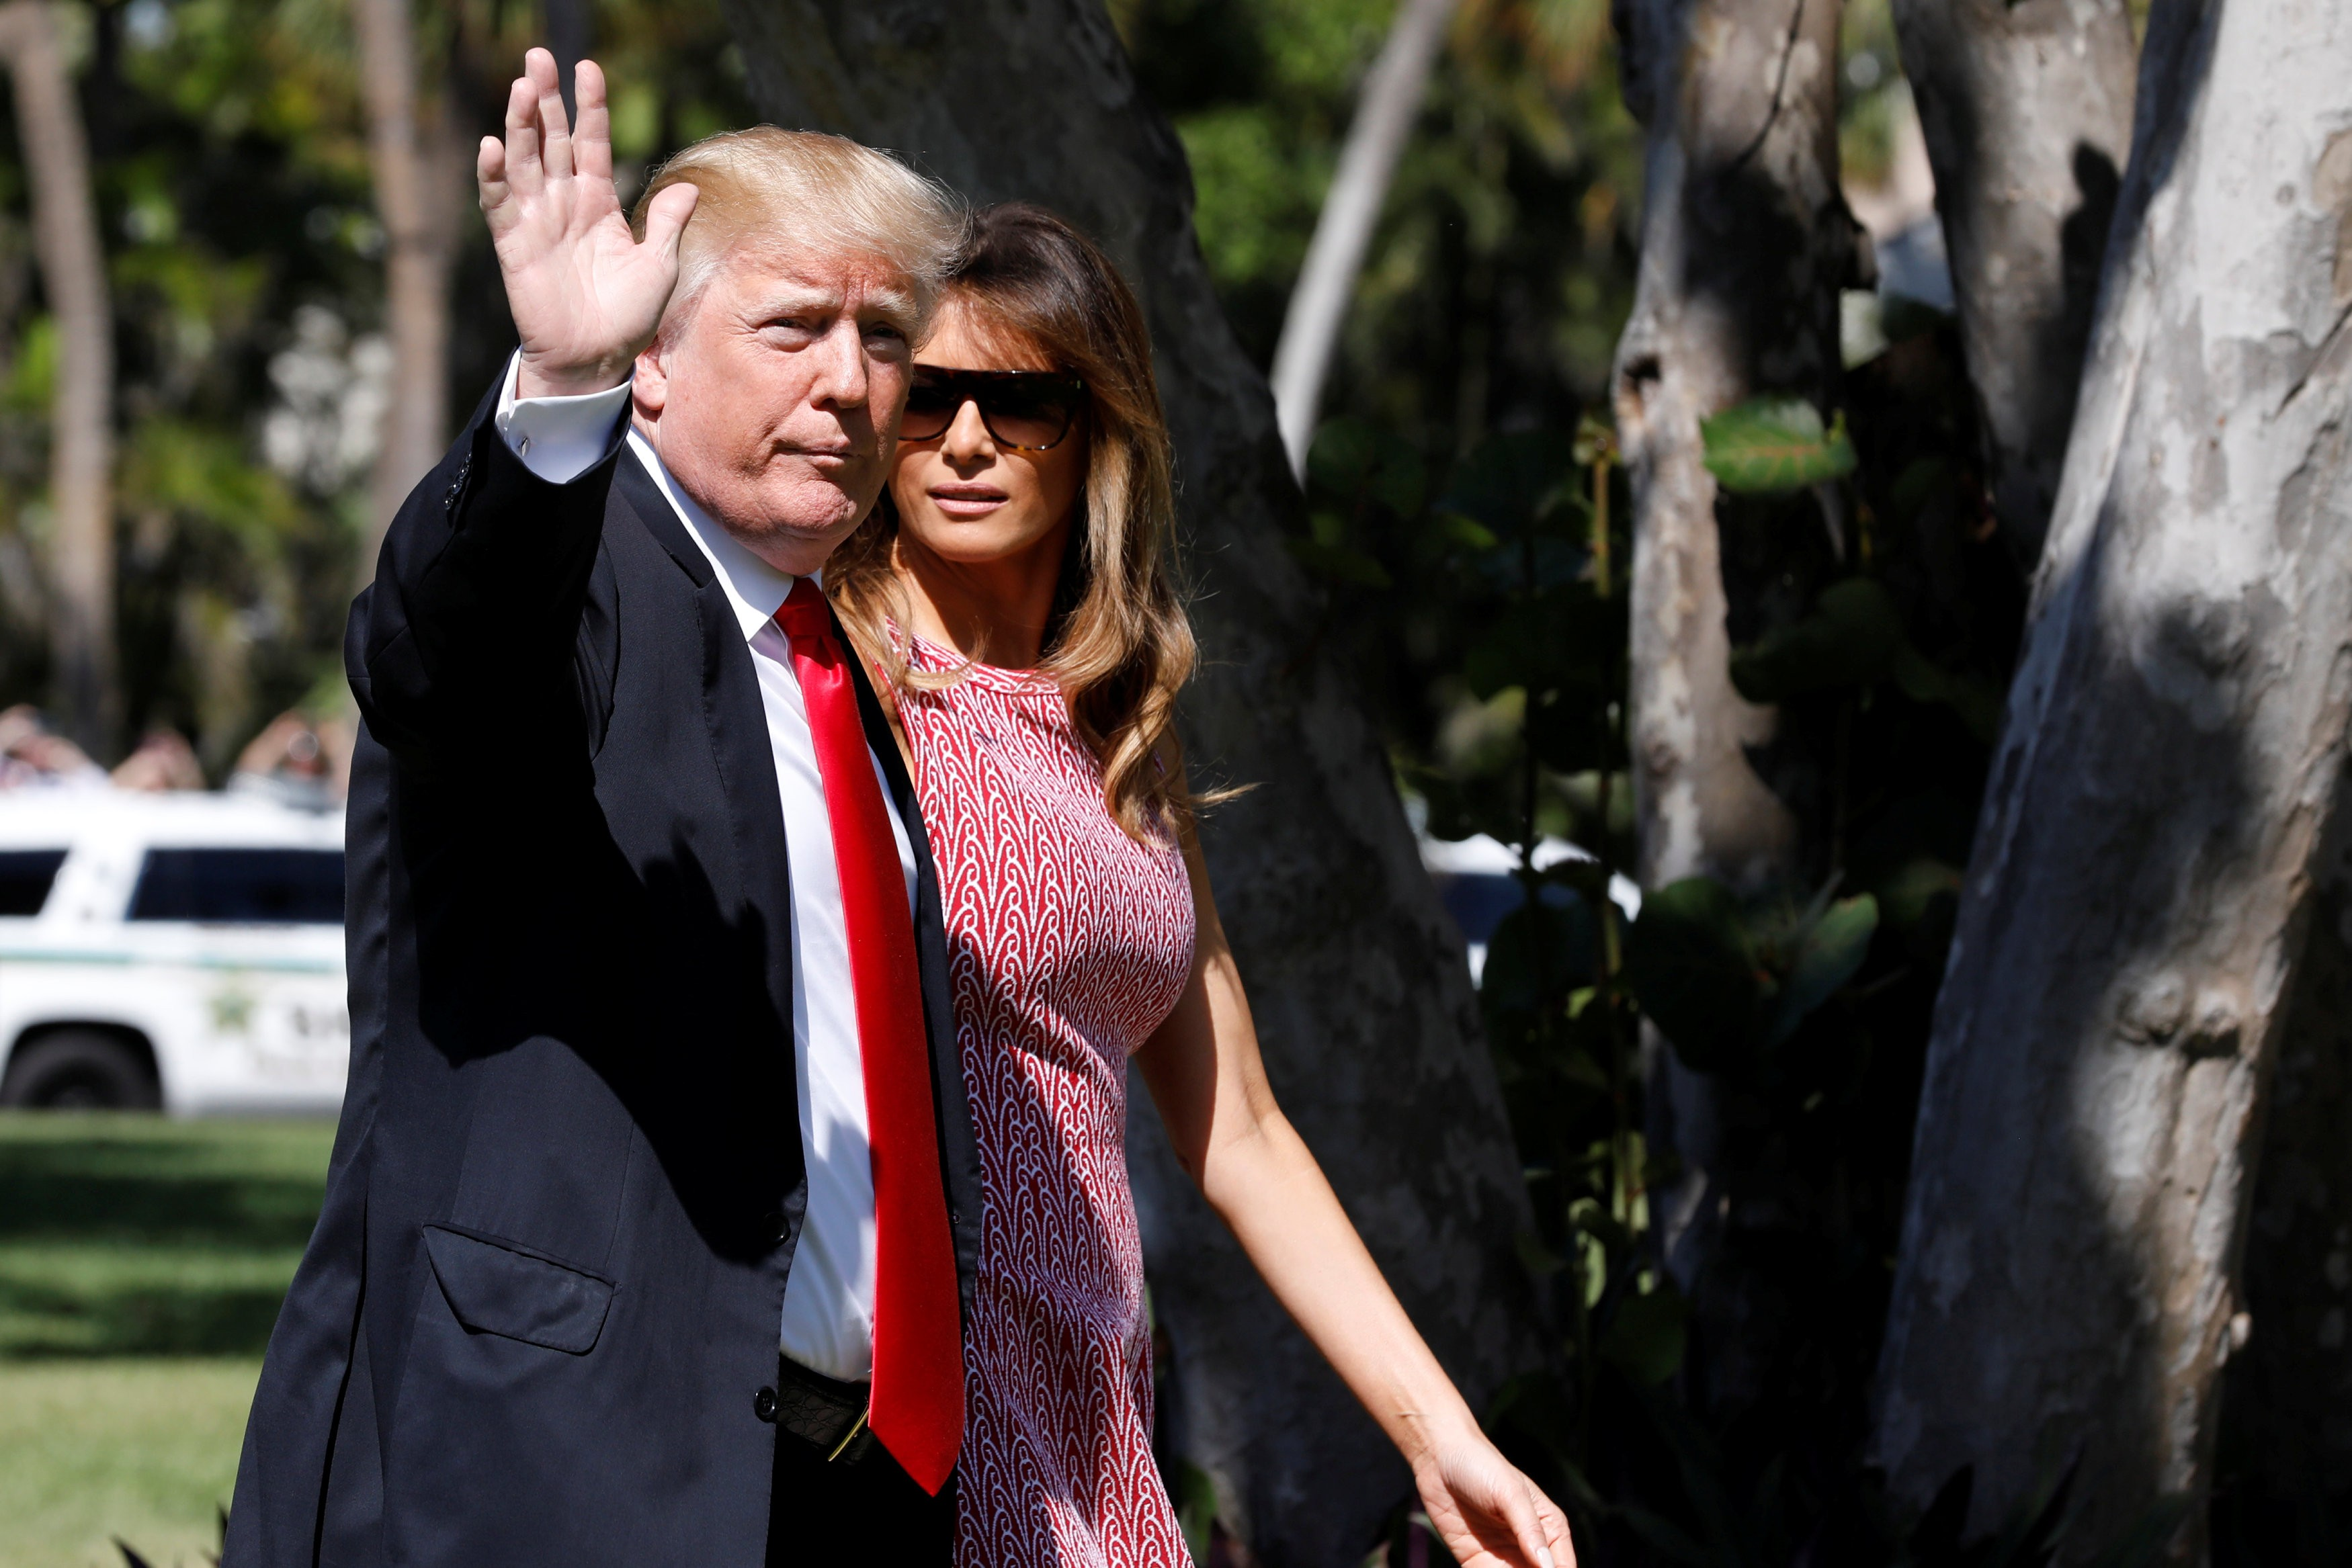 c095c1d97fb 20 facts about Melania Trump that show she is unlike any other US first  lady